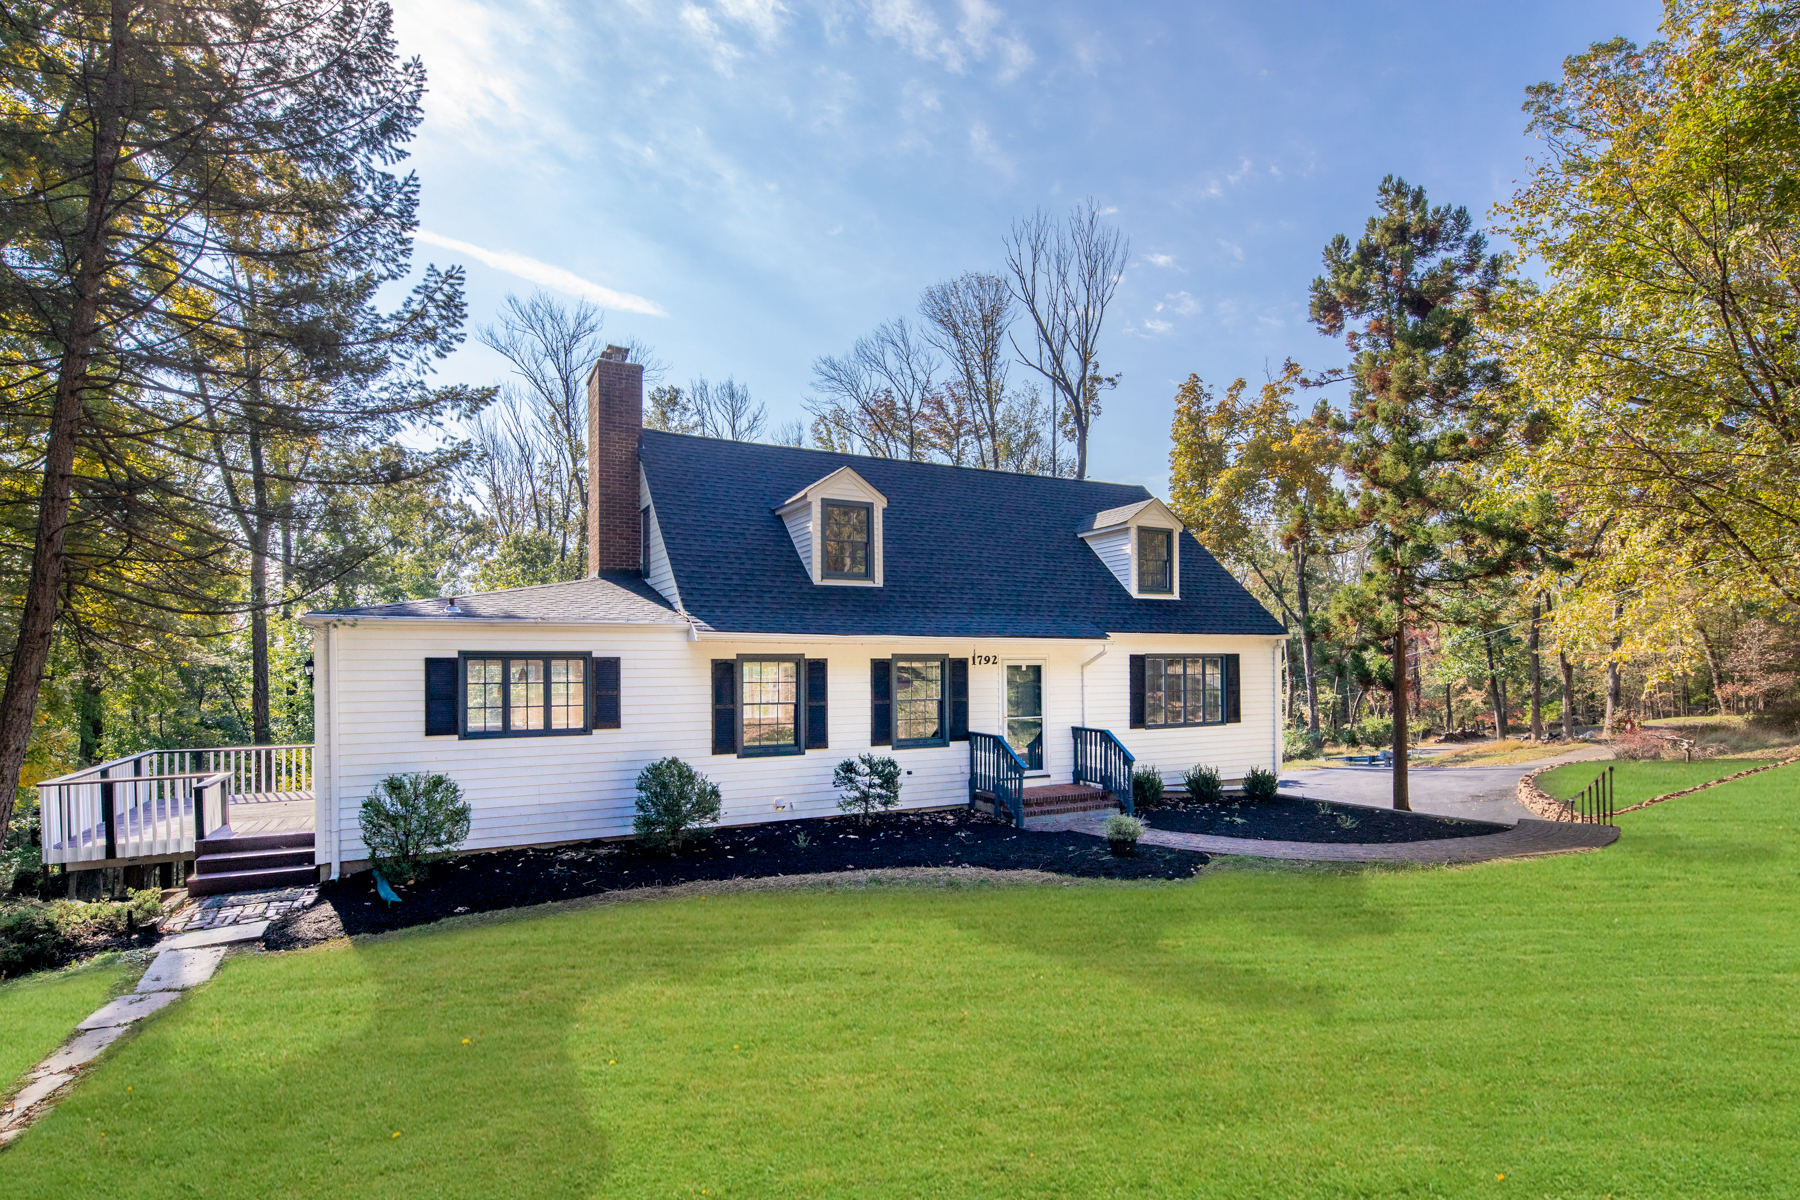 Single Family Home for Sale at Beautiful Custom Home 1792 Middlebrook Road, Bound Brook, New Jersey 08805 United States